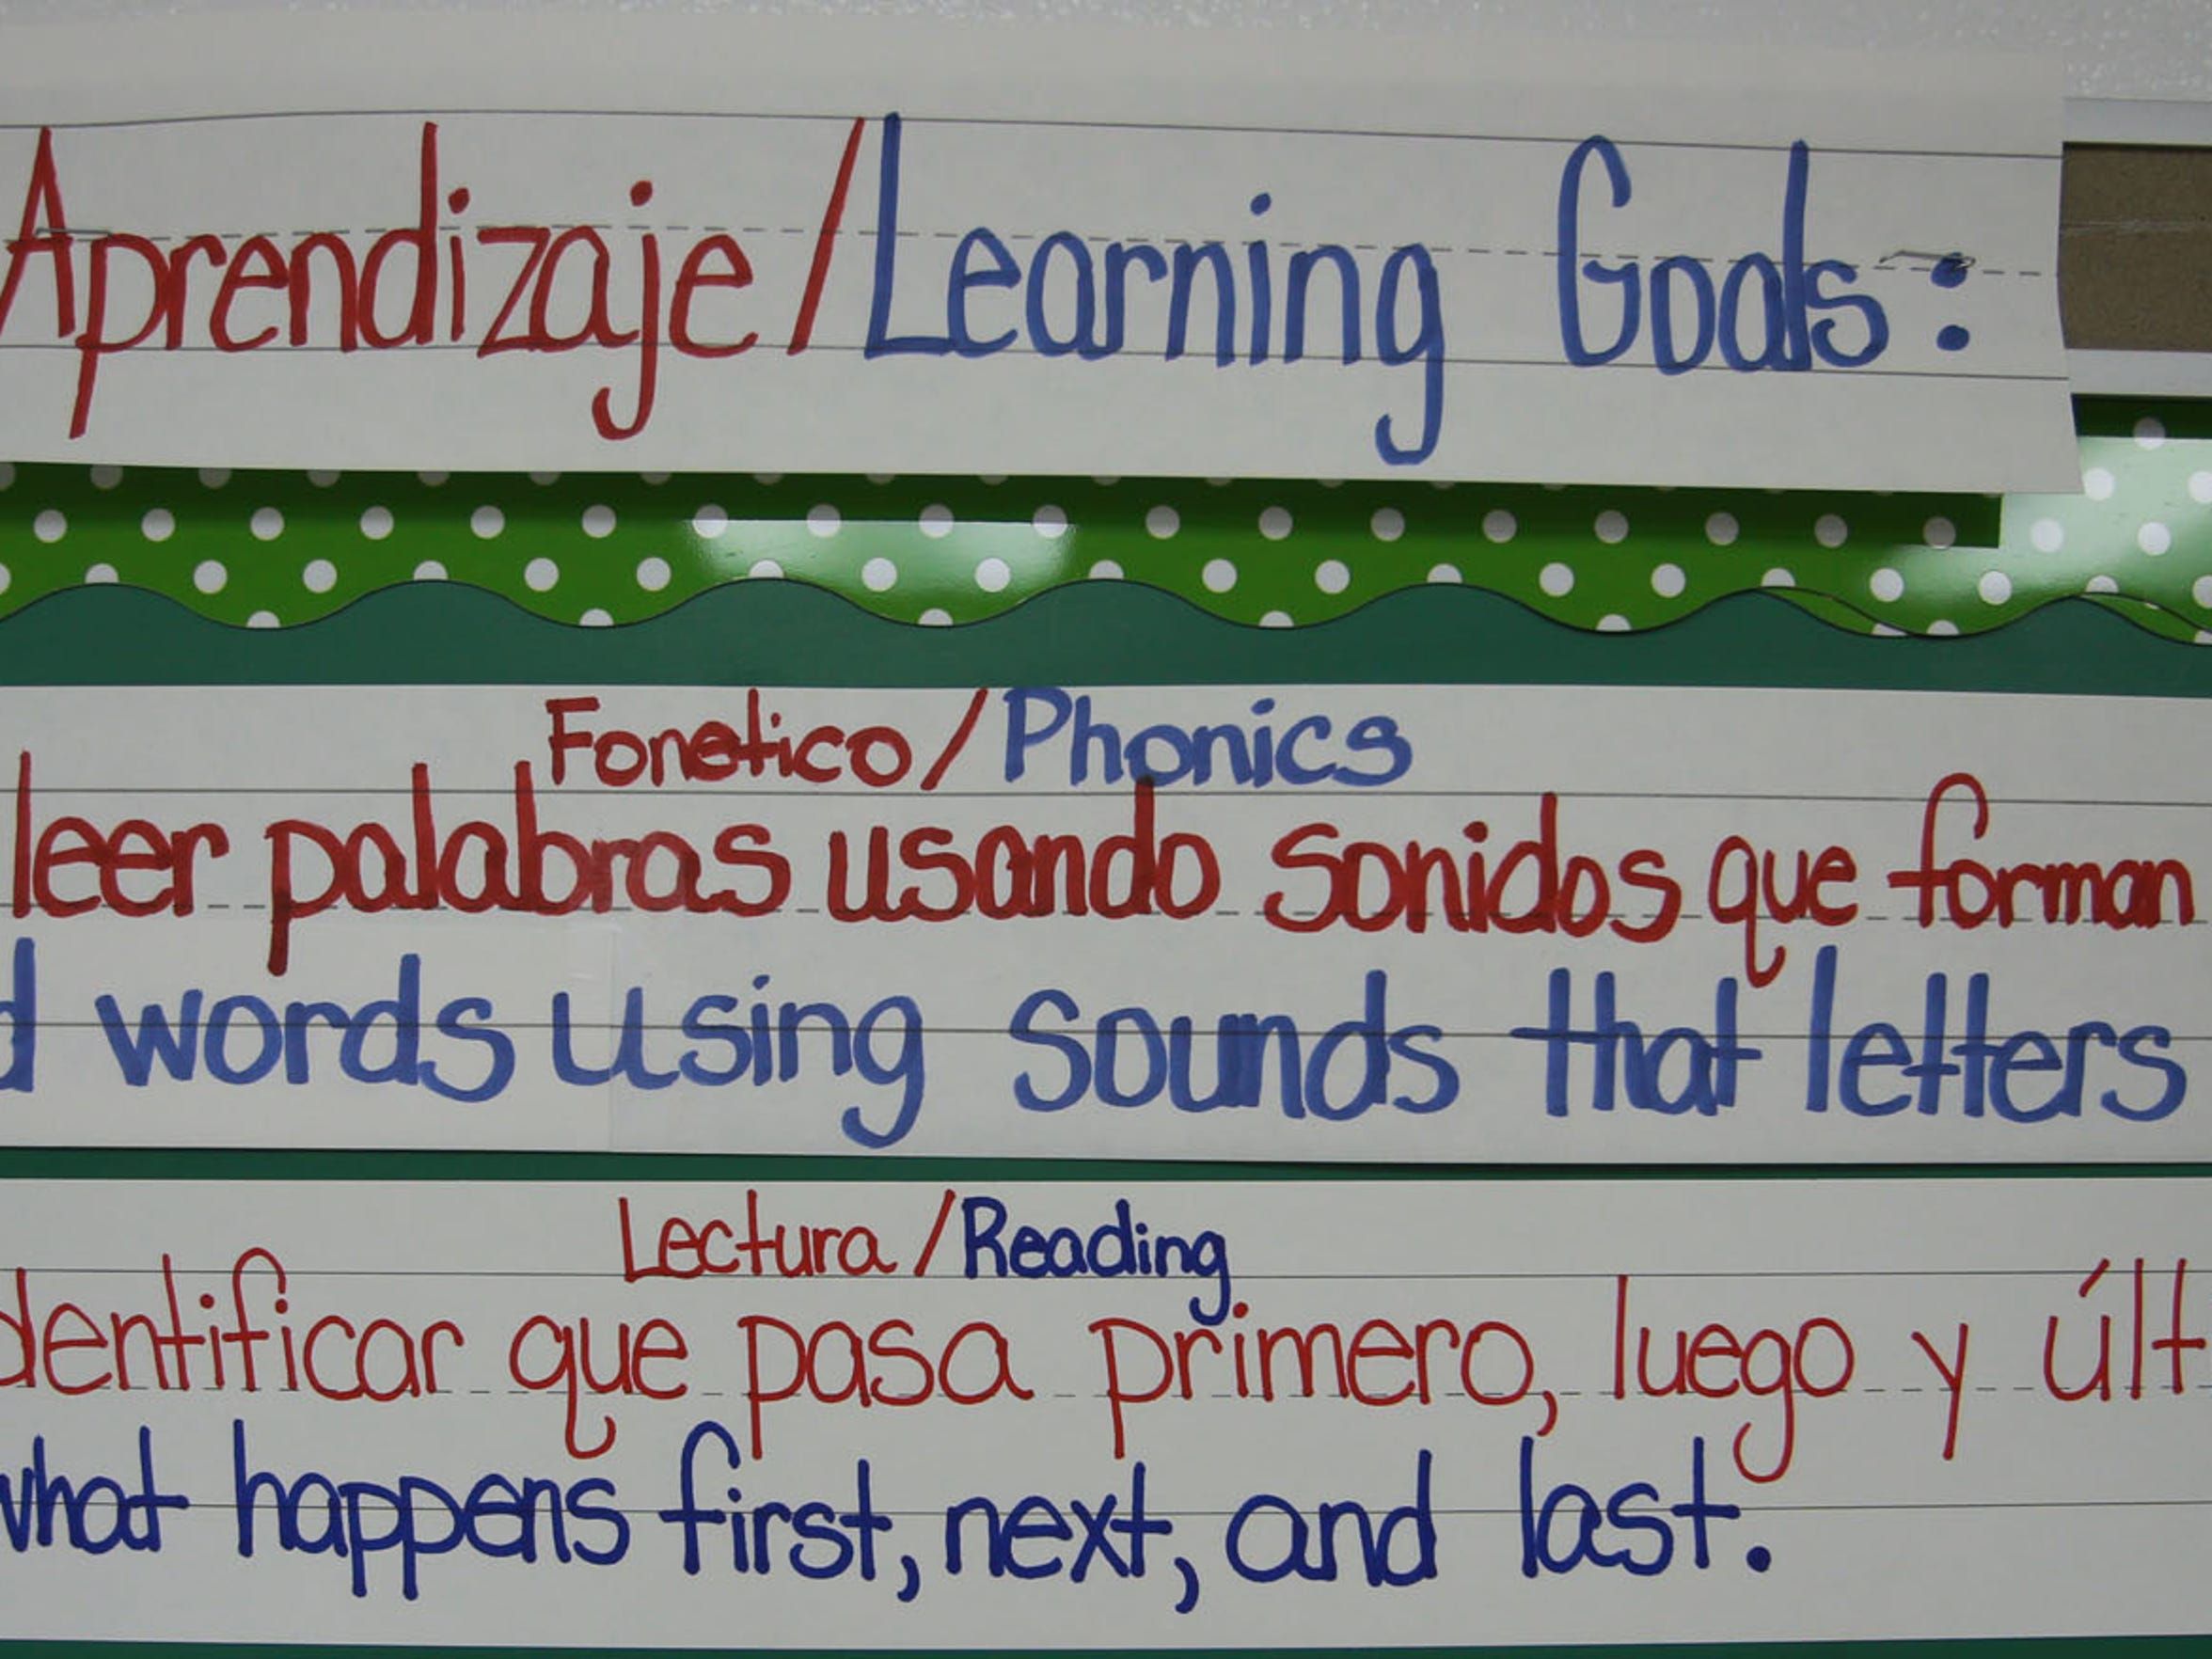 Phonics, reading lessons are displayed in English and Spanish.